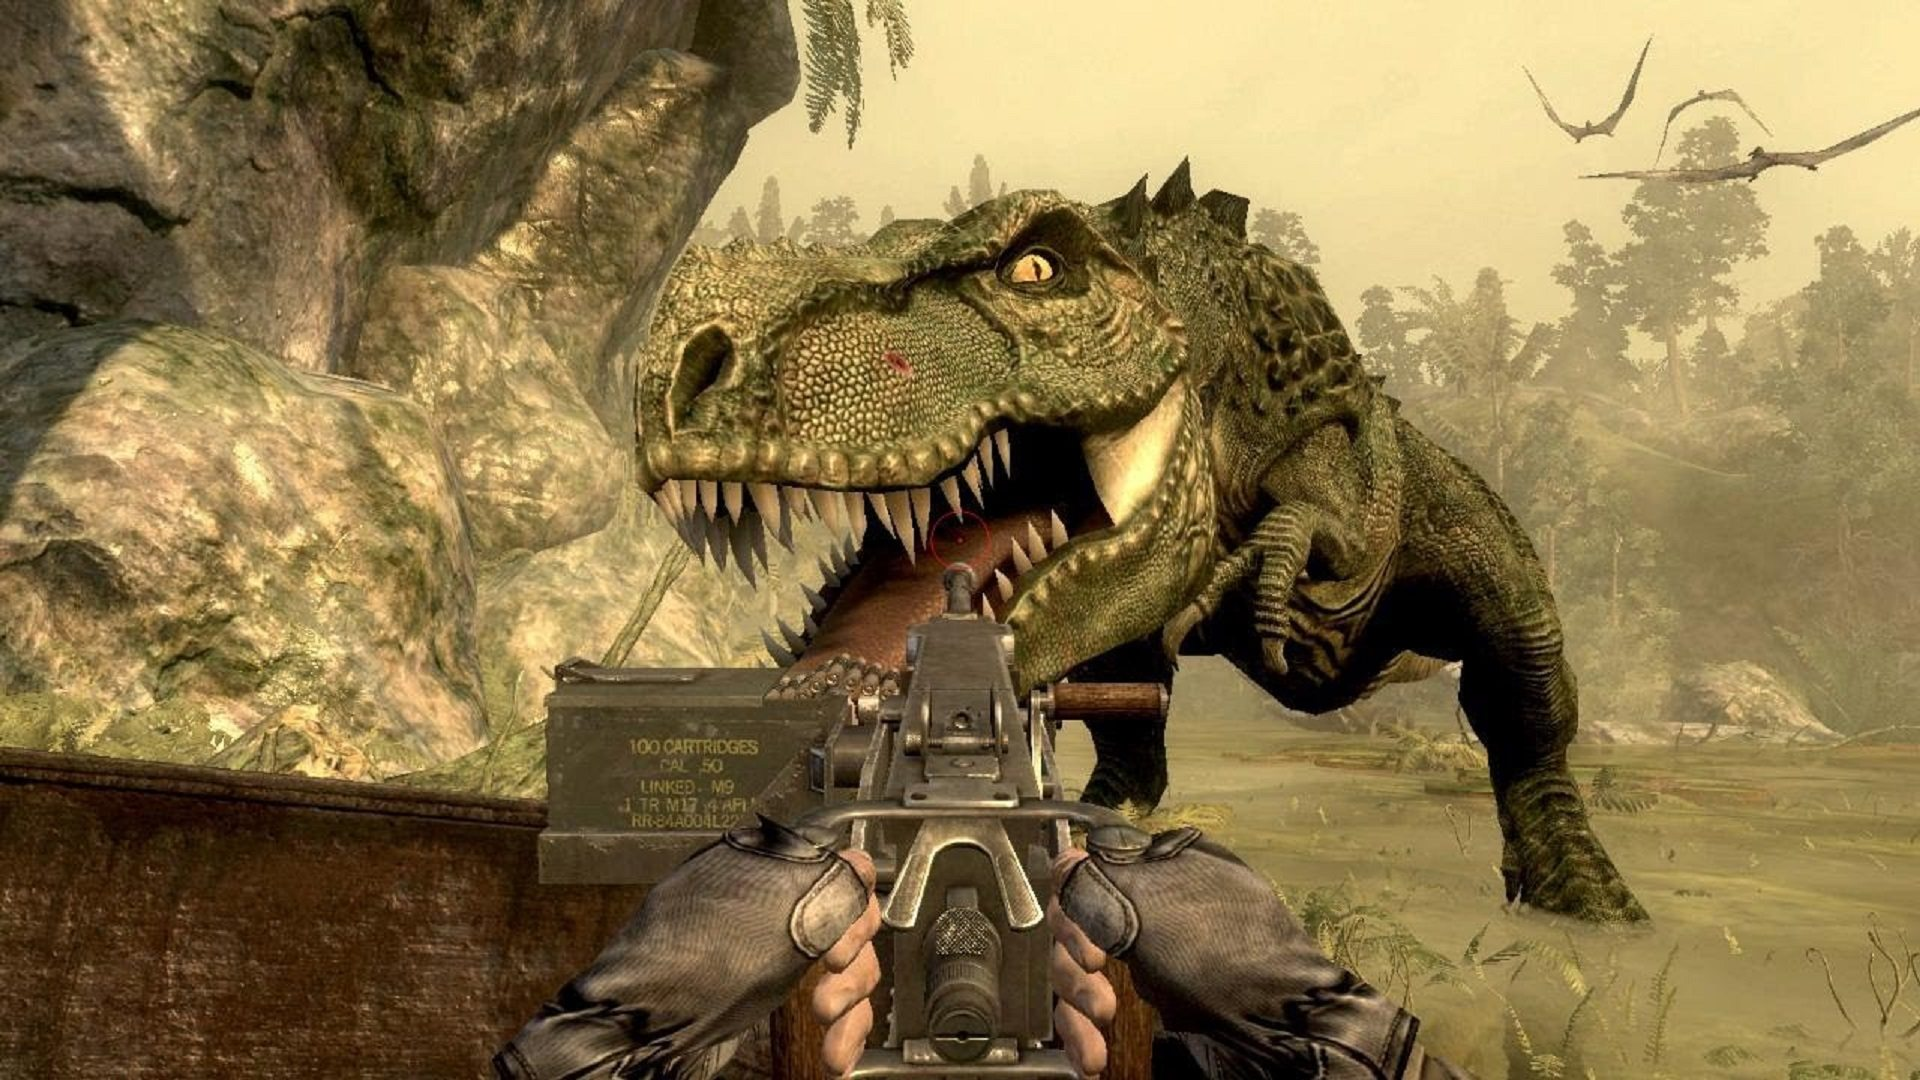 (JURASSIC: THE HUNTED - ACTIVISION)